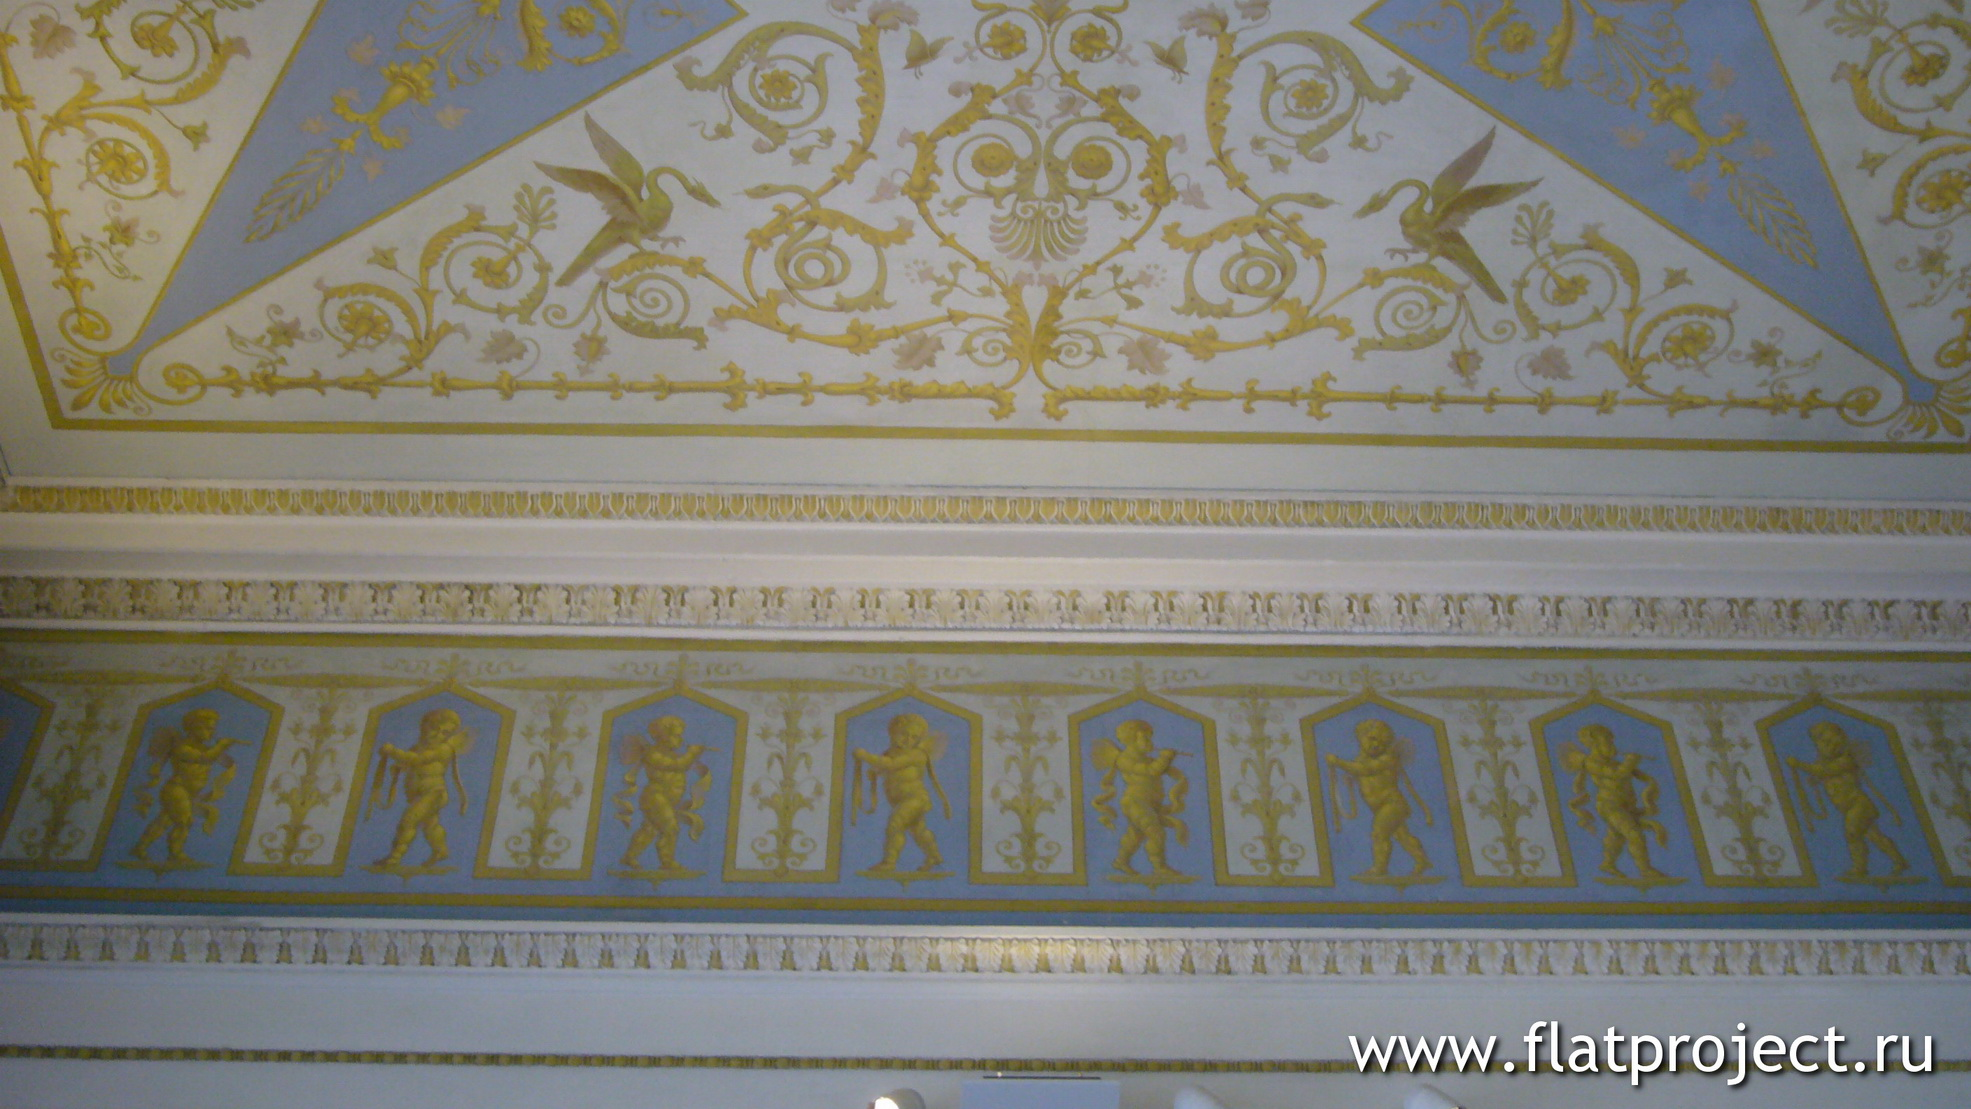 The State Hermitage museum interiors – photo 218